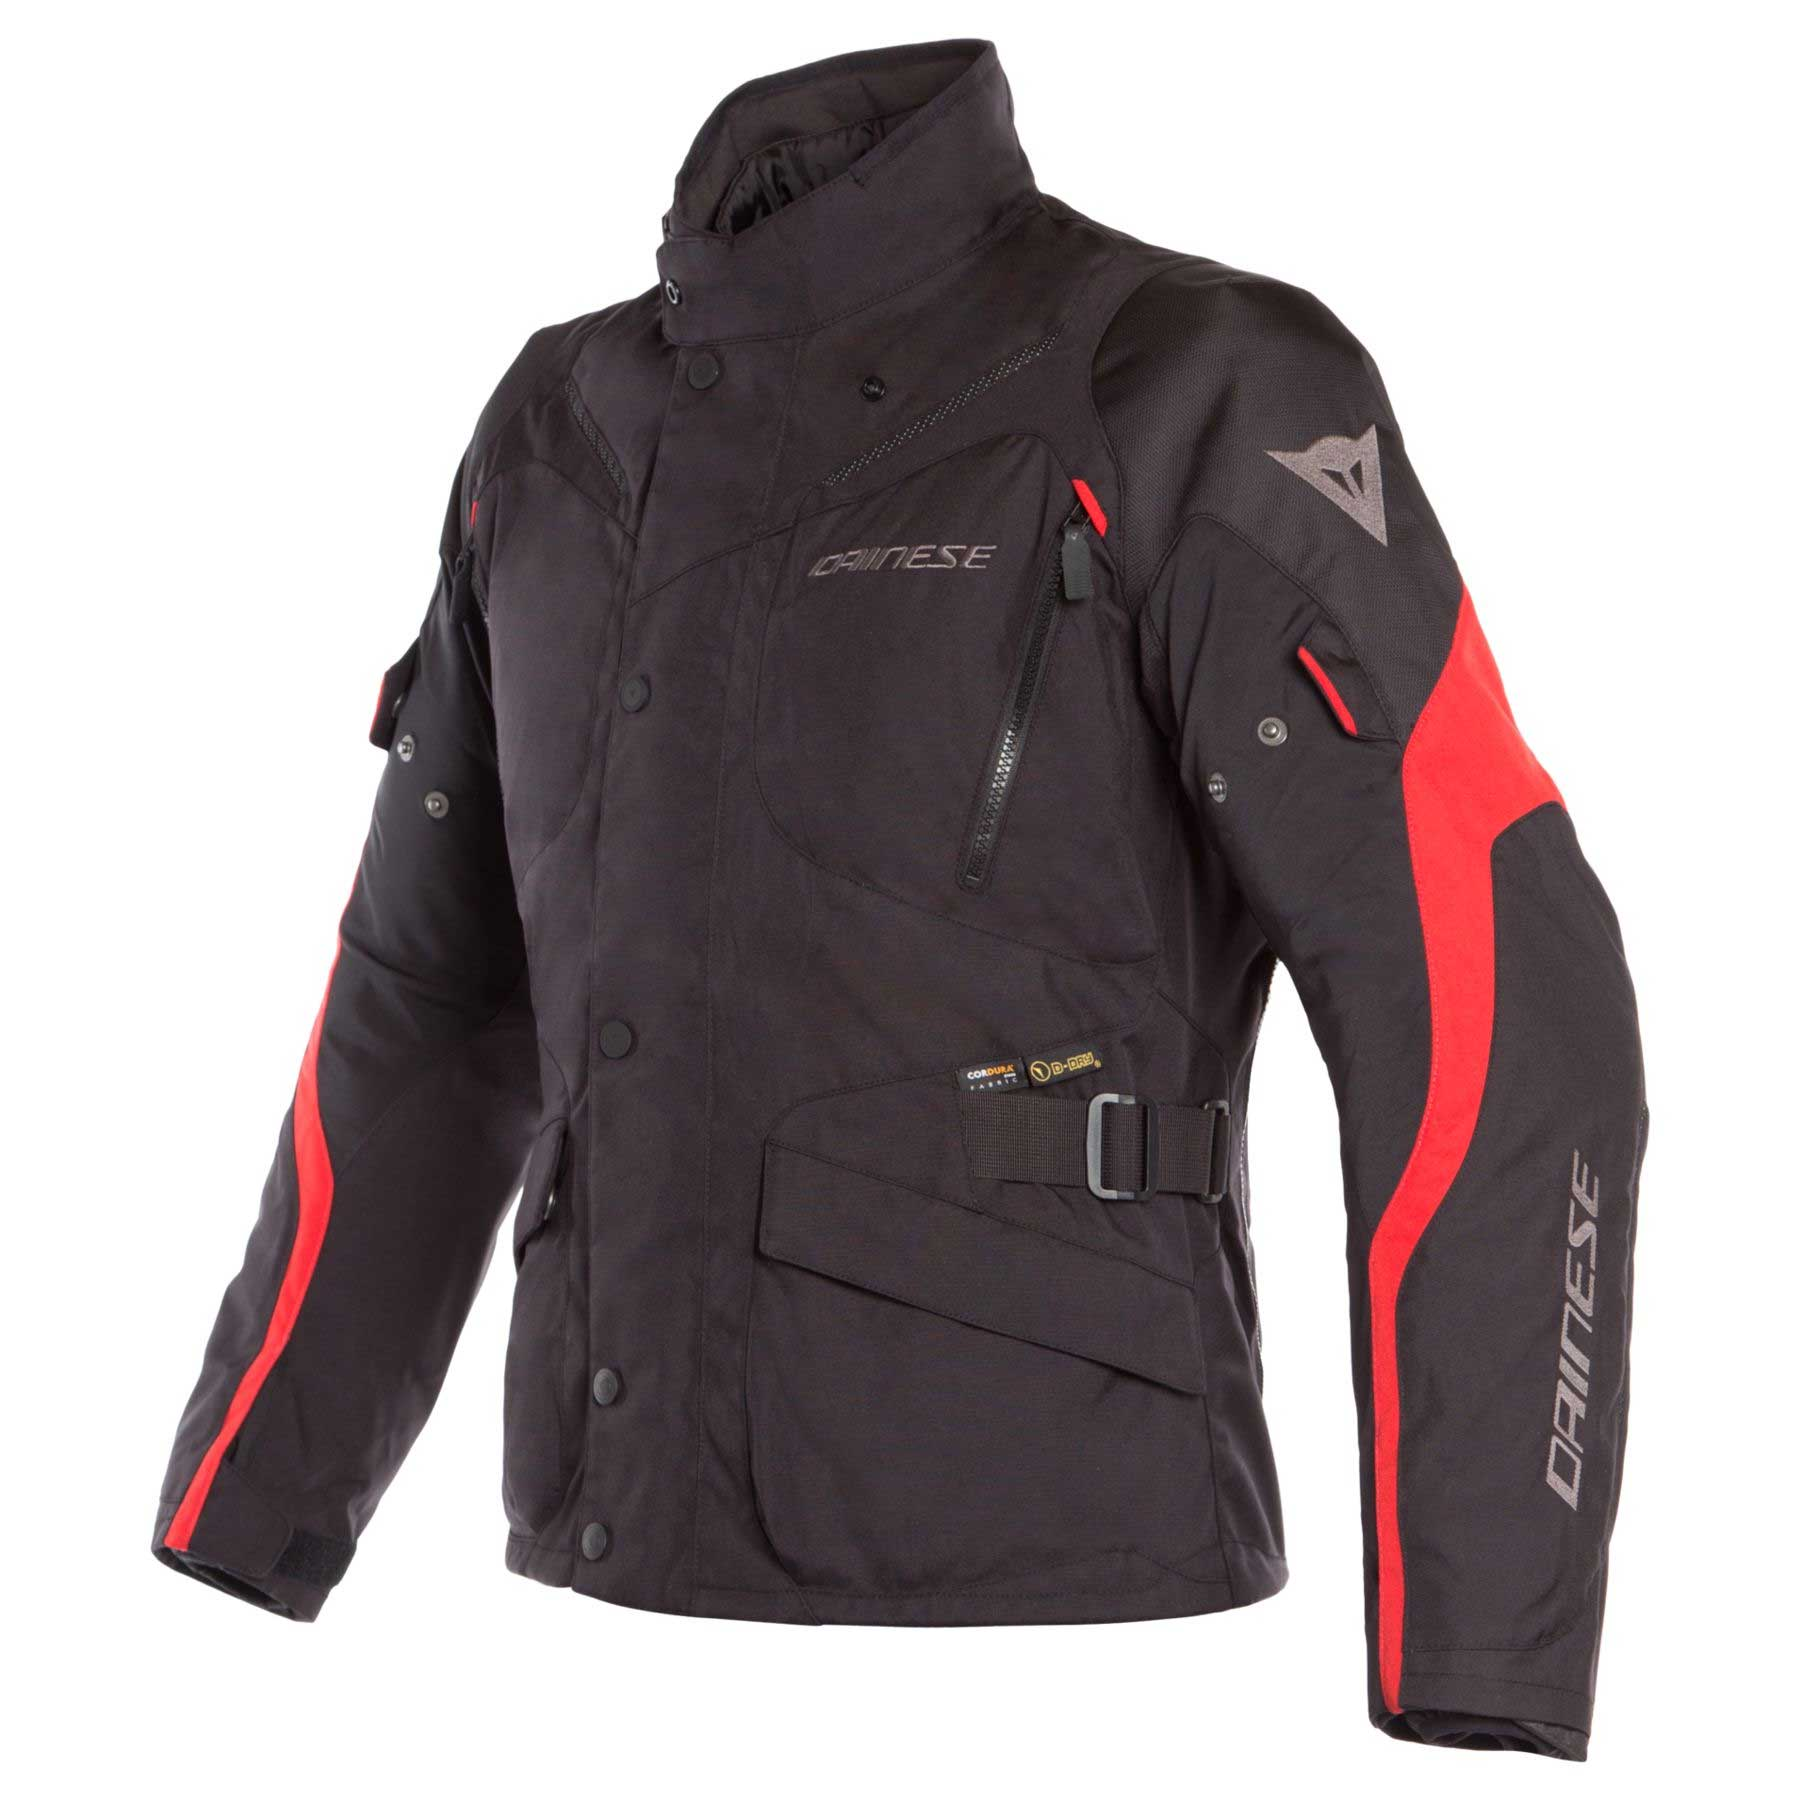 Dainese Giacca Tempest 2 D-dry Nero Rosso